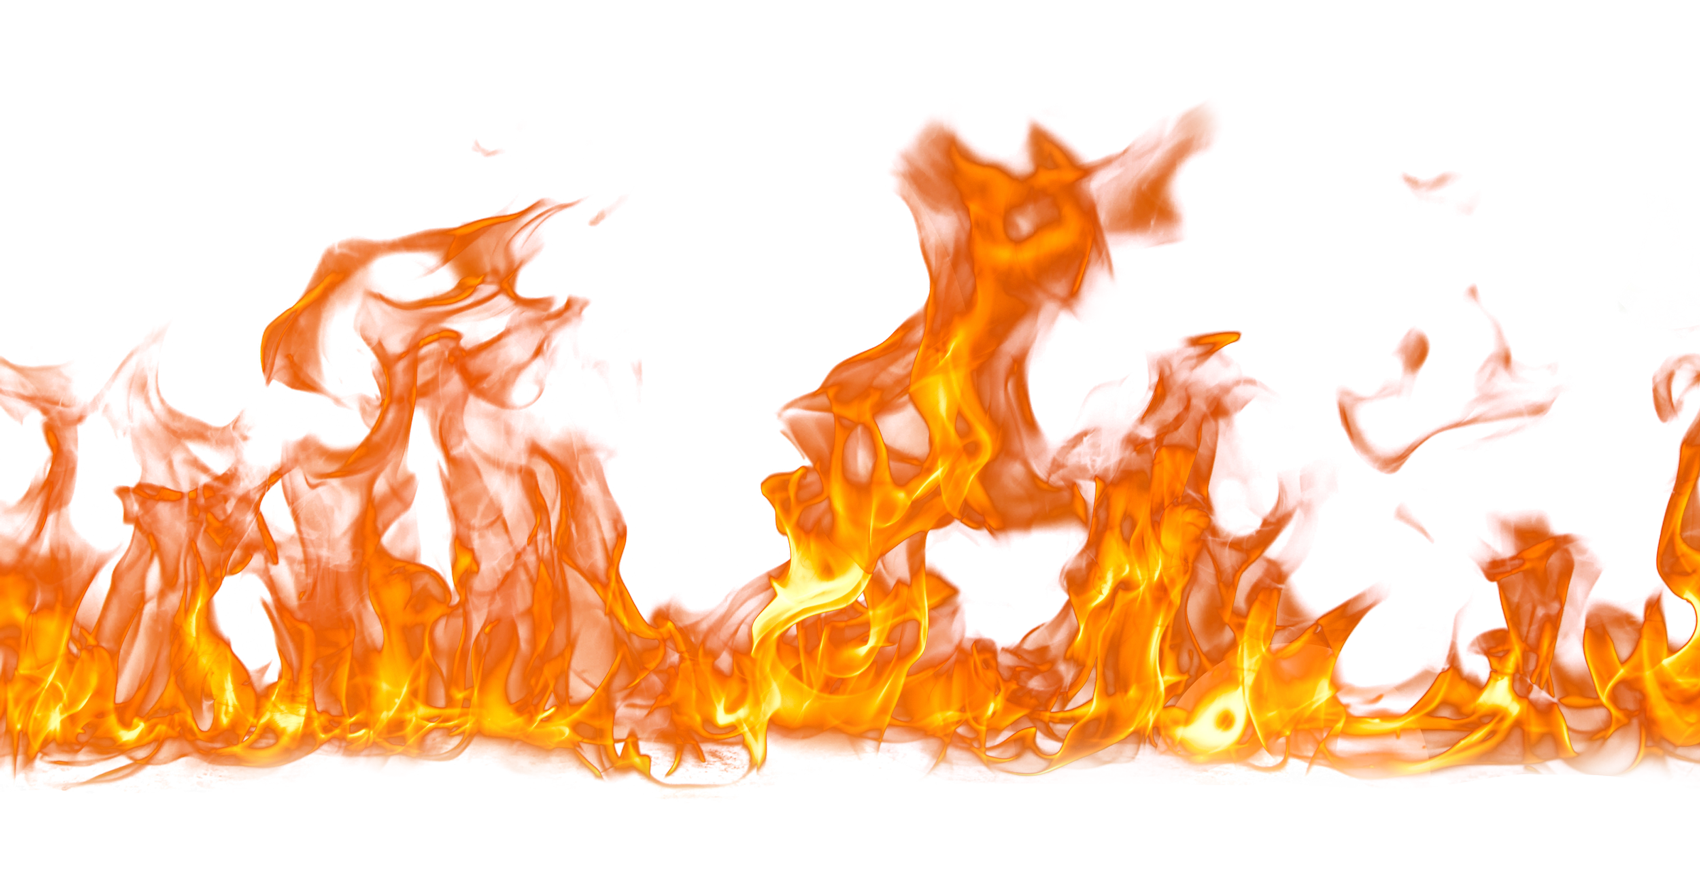 Fire clipart volcano. Png transparent images all